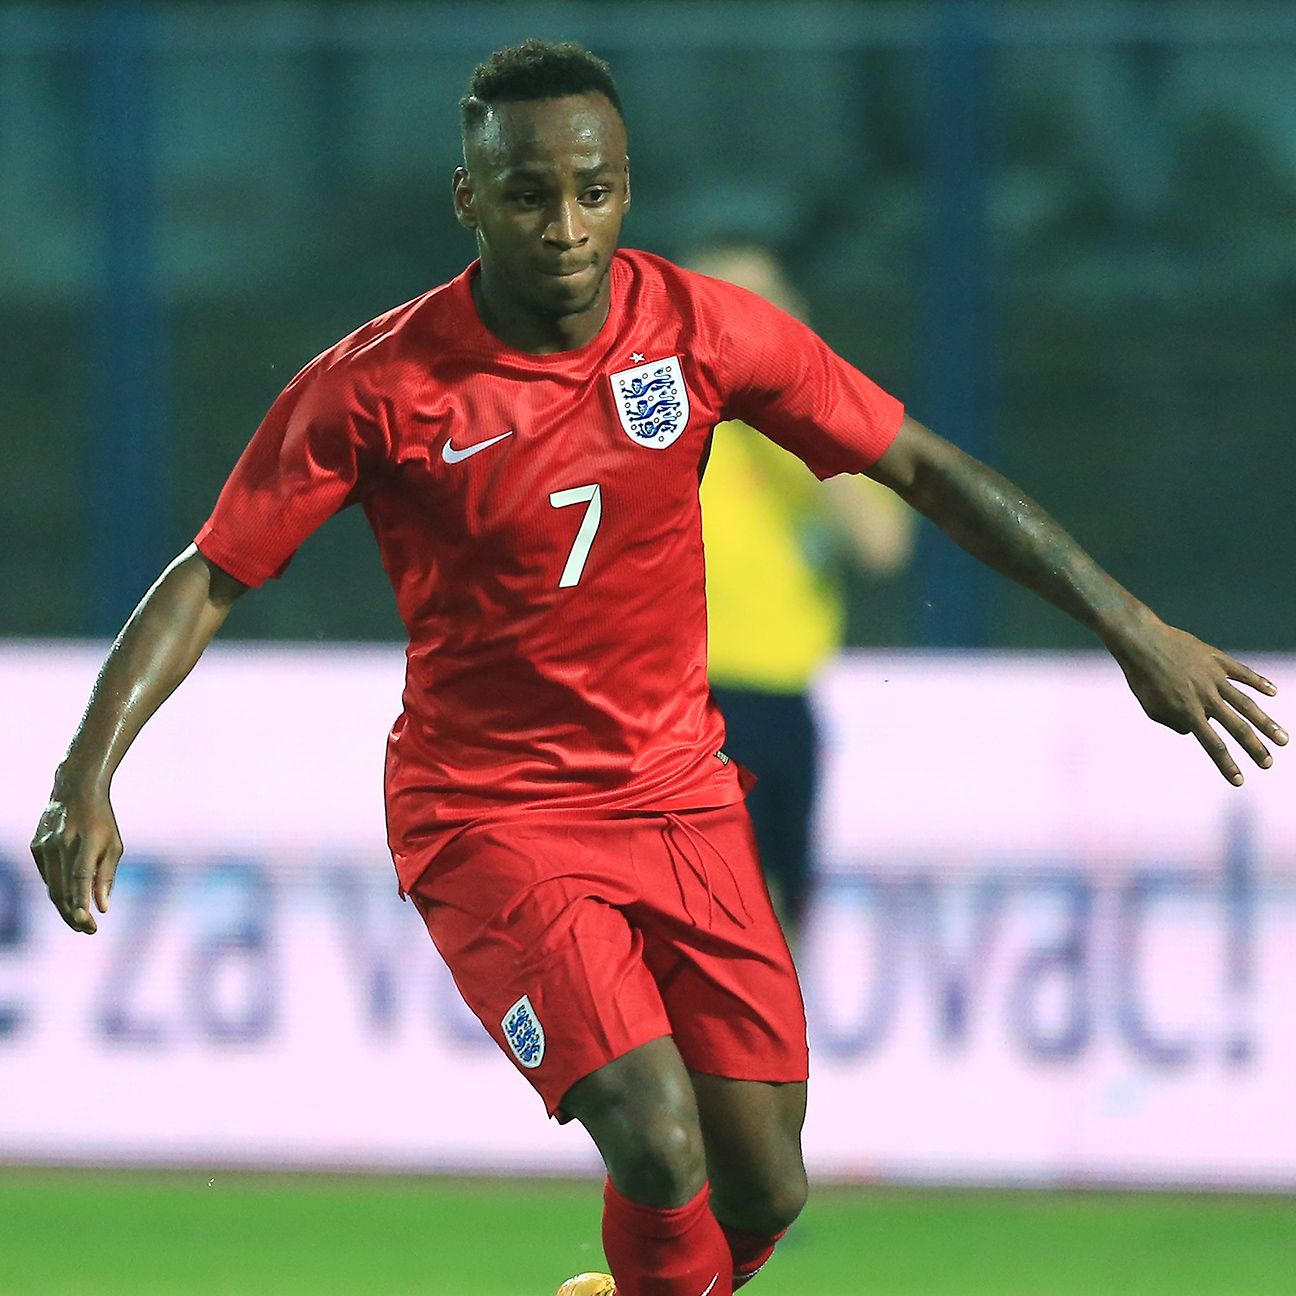 West Brom's Saido Berhaino will hope to have a chance to shine on the senior international stage.